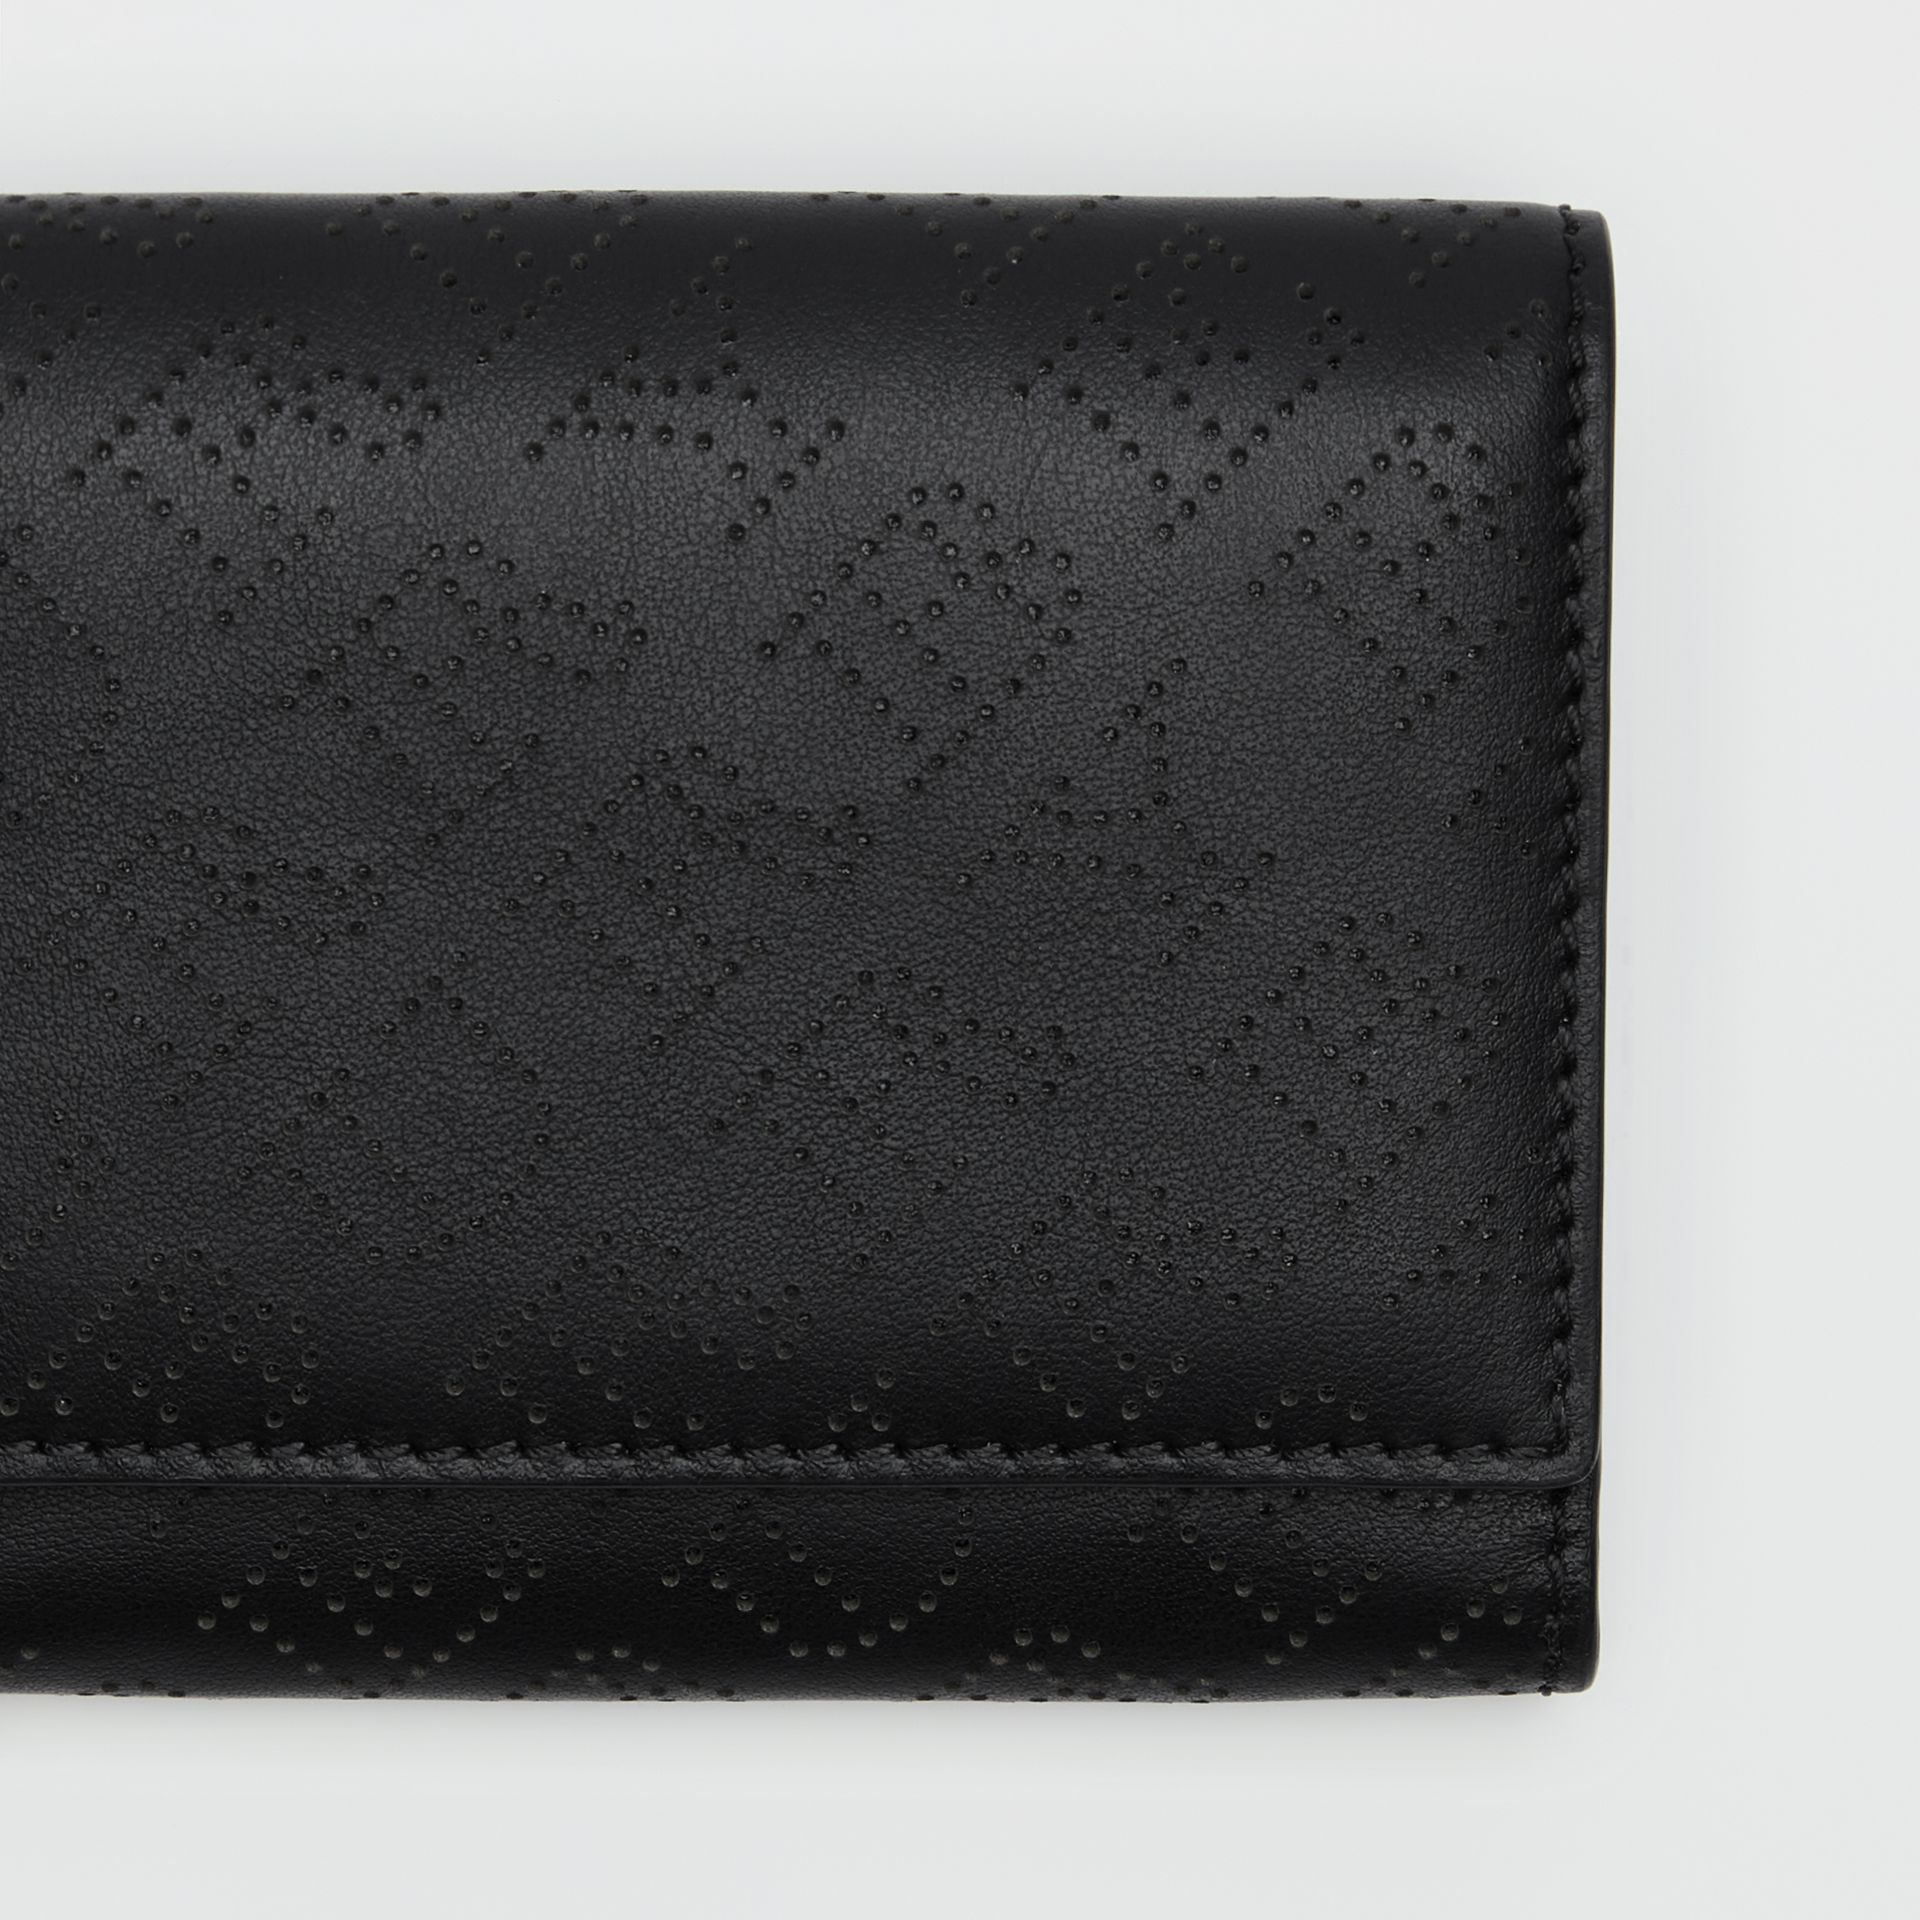 Small Perforated Logo Leather Wallet in Black - Women | Burberry United States - gallery image 1